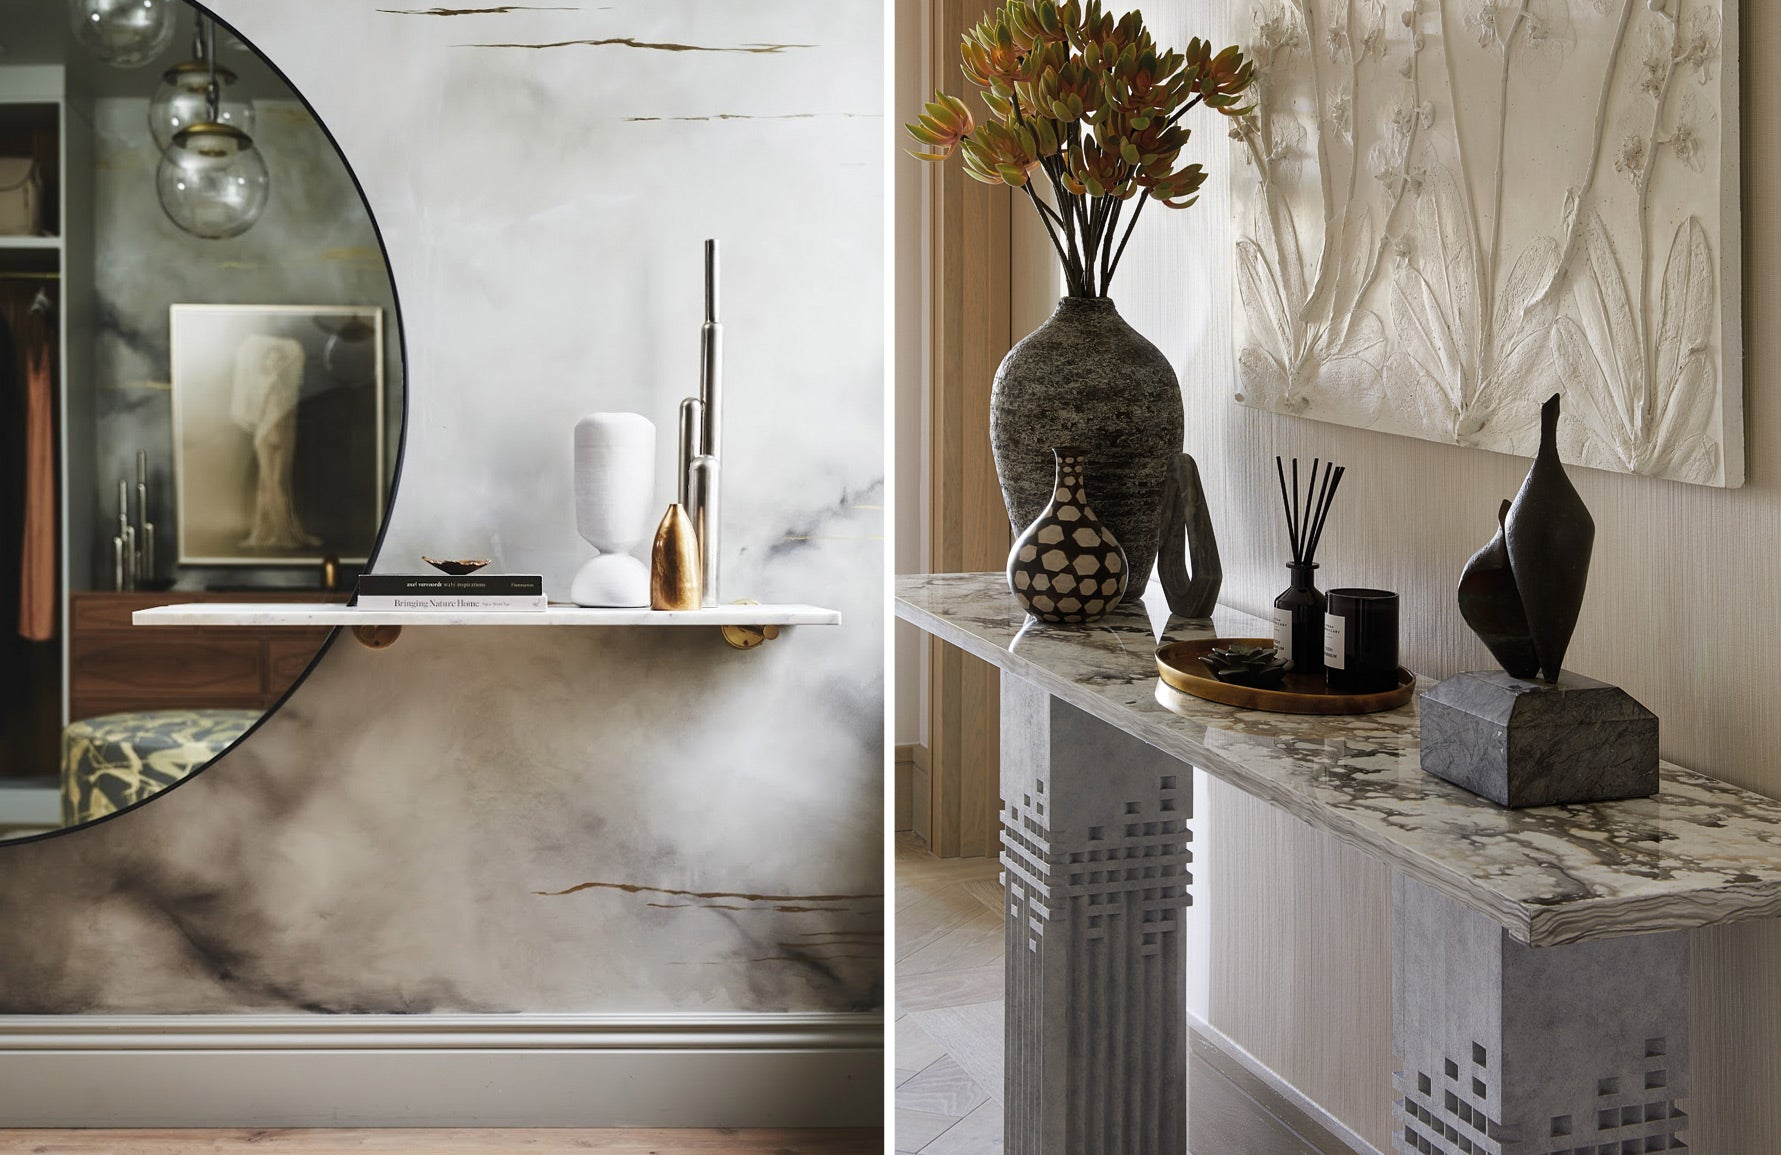 How To Make A Small Room Look Bigger   K Interiors/Elicyon   Small Room Ideas   Shop luxury furniture online at LuxDeco.com